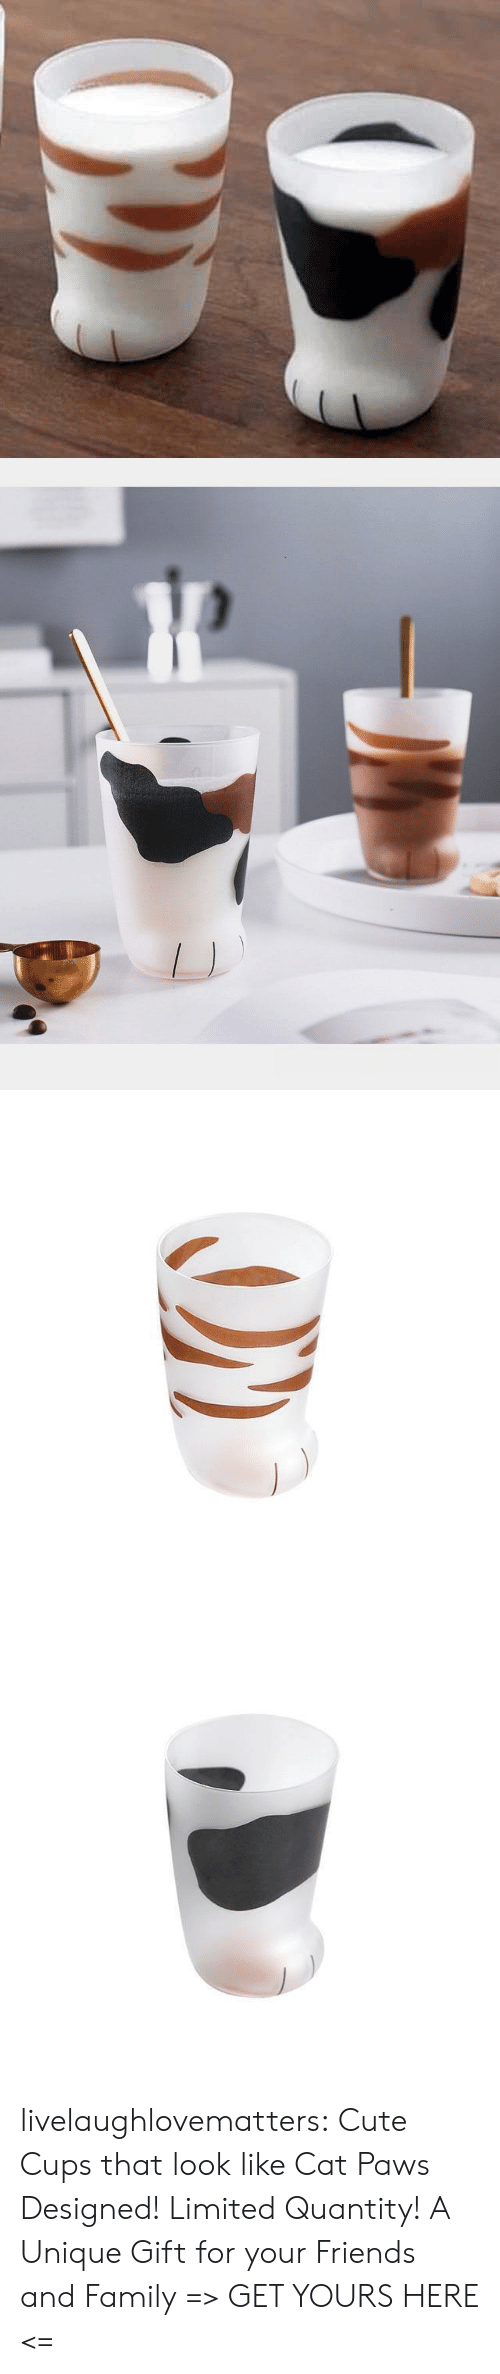 Paws: livelaughlovematters:  Cute Cups that look like Cat Paws Designed! Limited Quantity! A Unique Gift for your Friends and Family => GET YOURS HERE <=